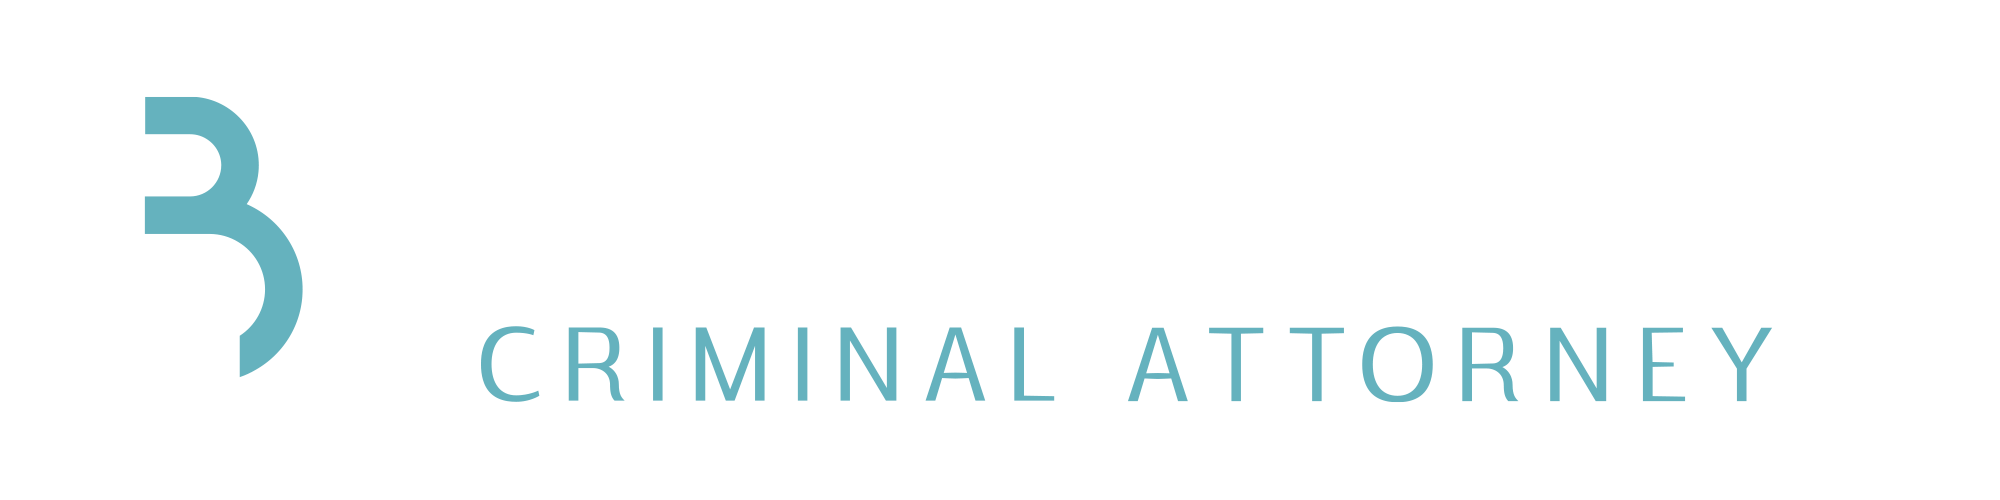 Long Beach Criminal Attorney logo